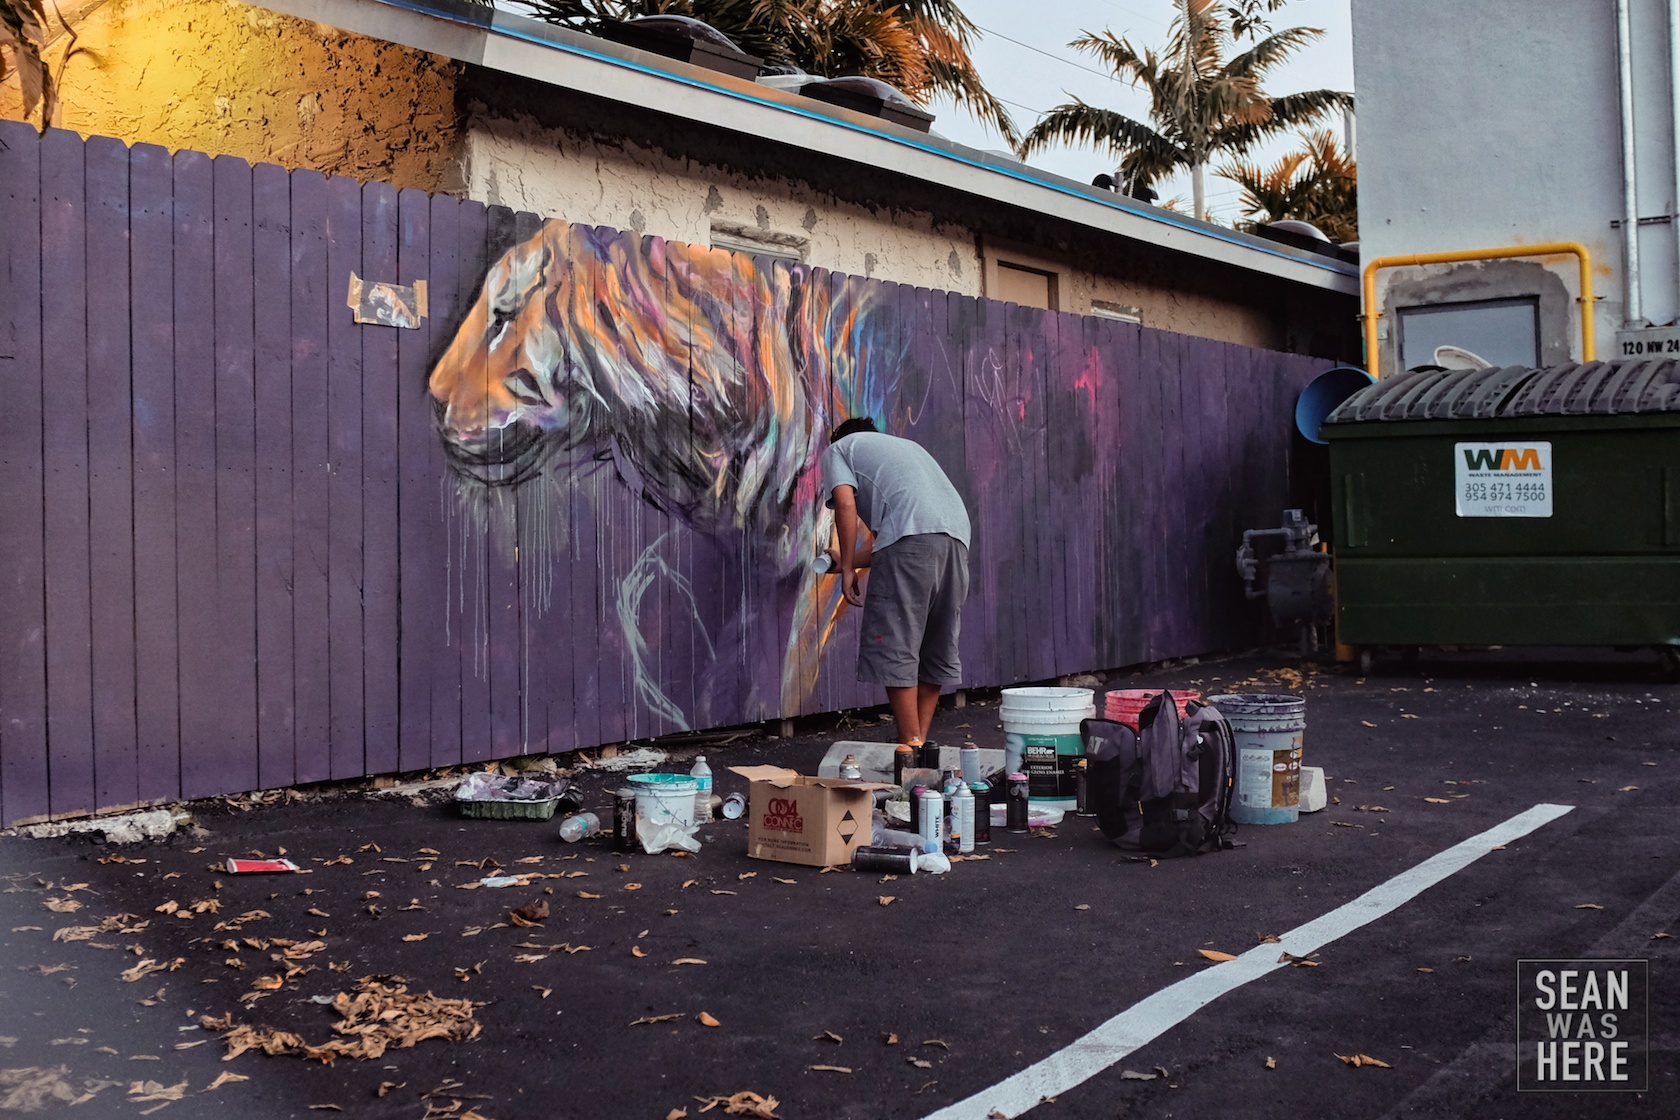 Never got this artist name! Amazing tiger though. Wynwood Miami